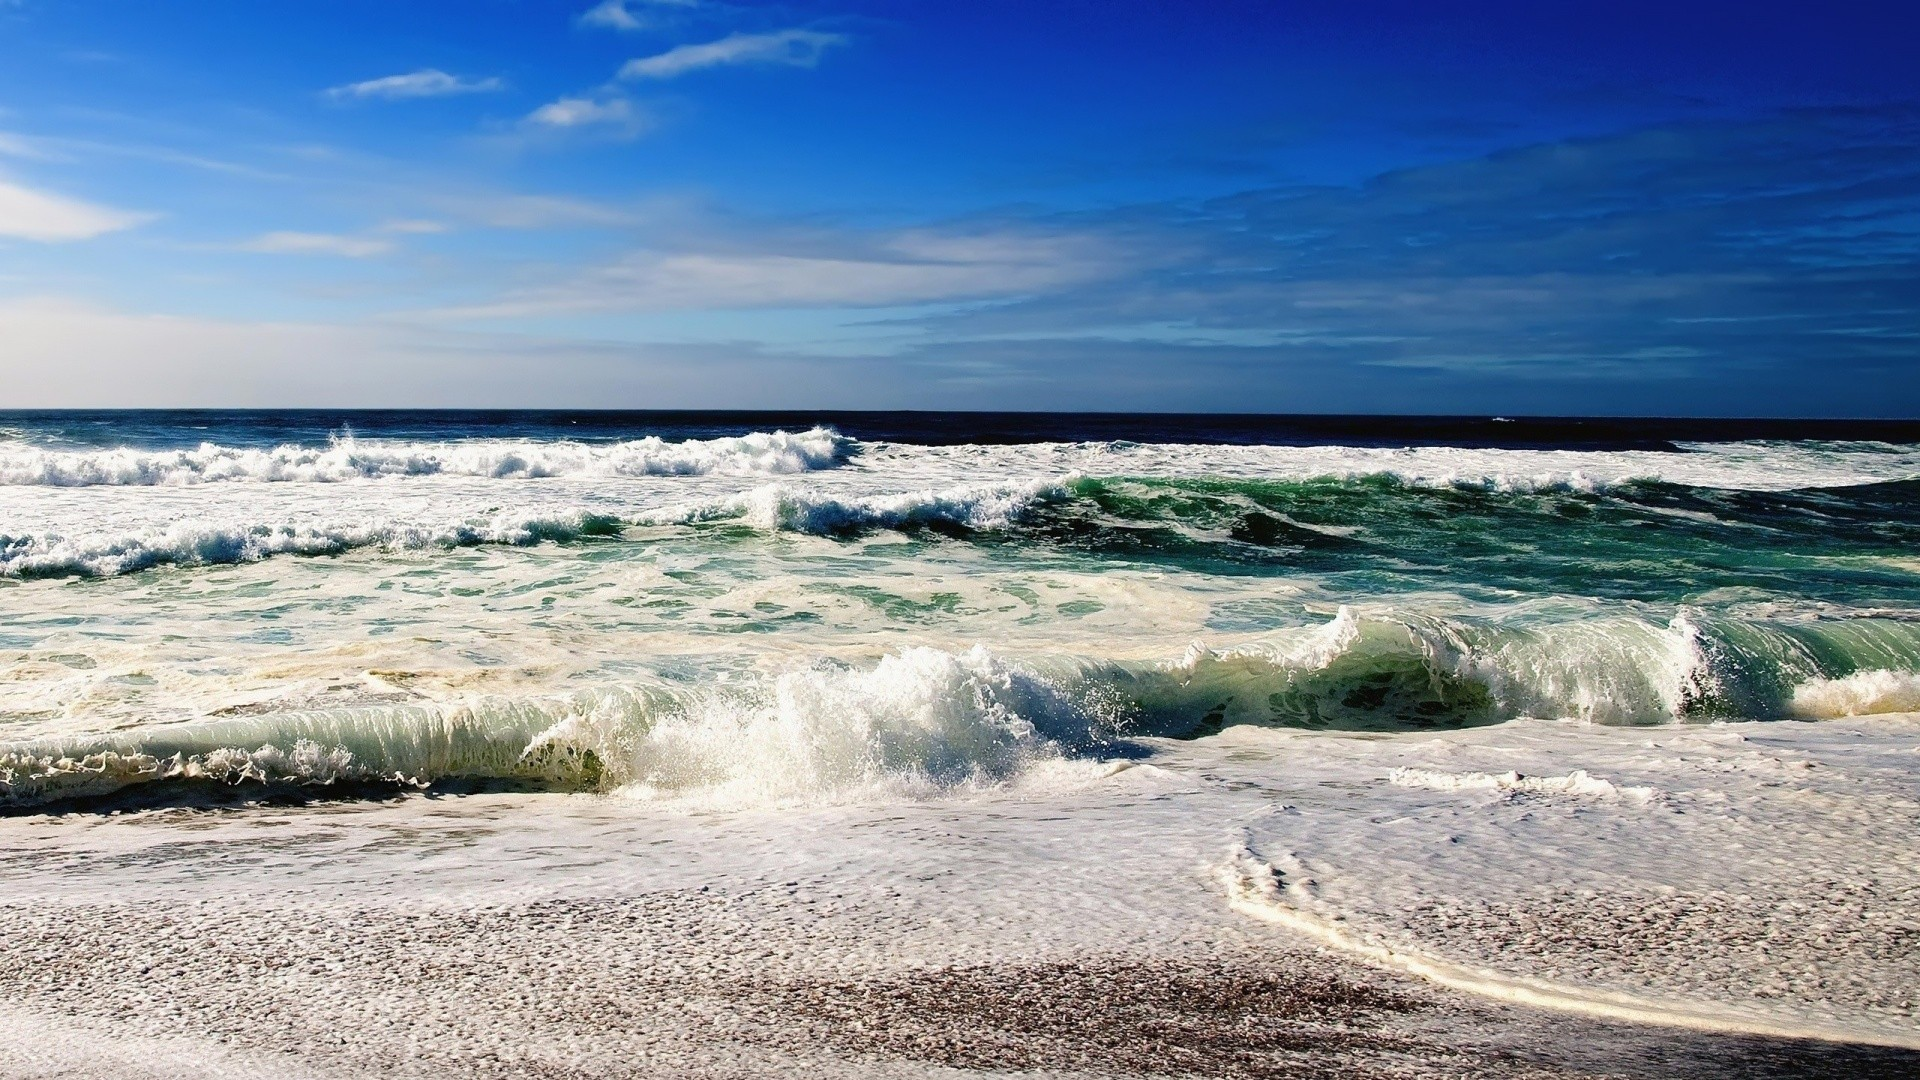 clear crisp ocean waves wallpaper allwallpaper in 12661 pc en